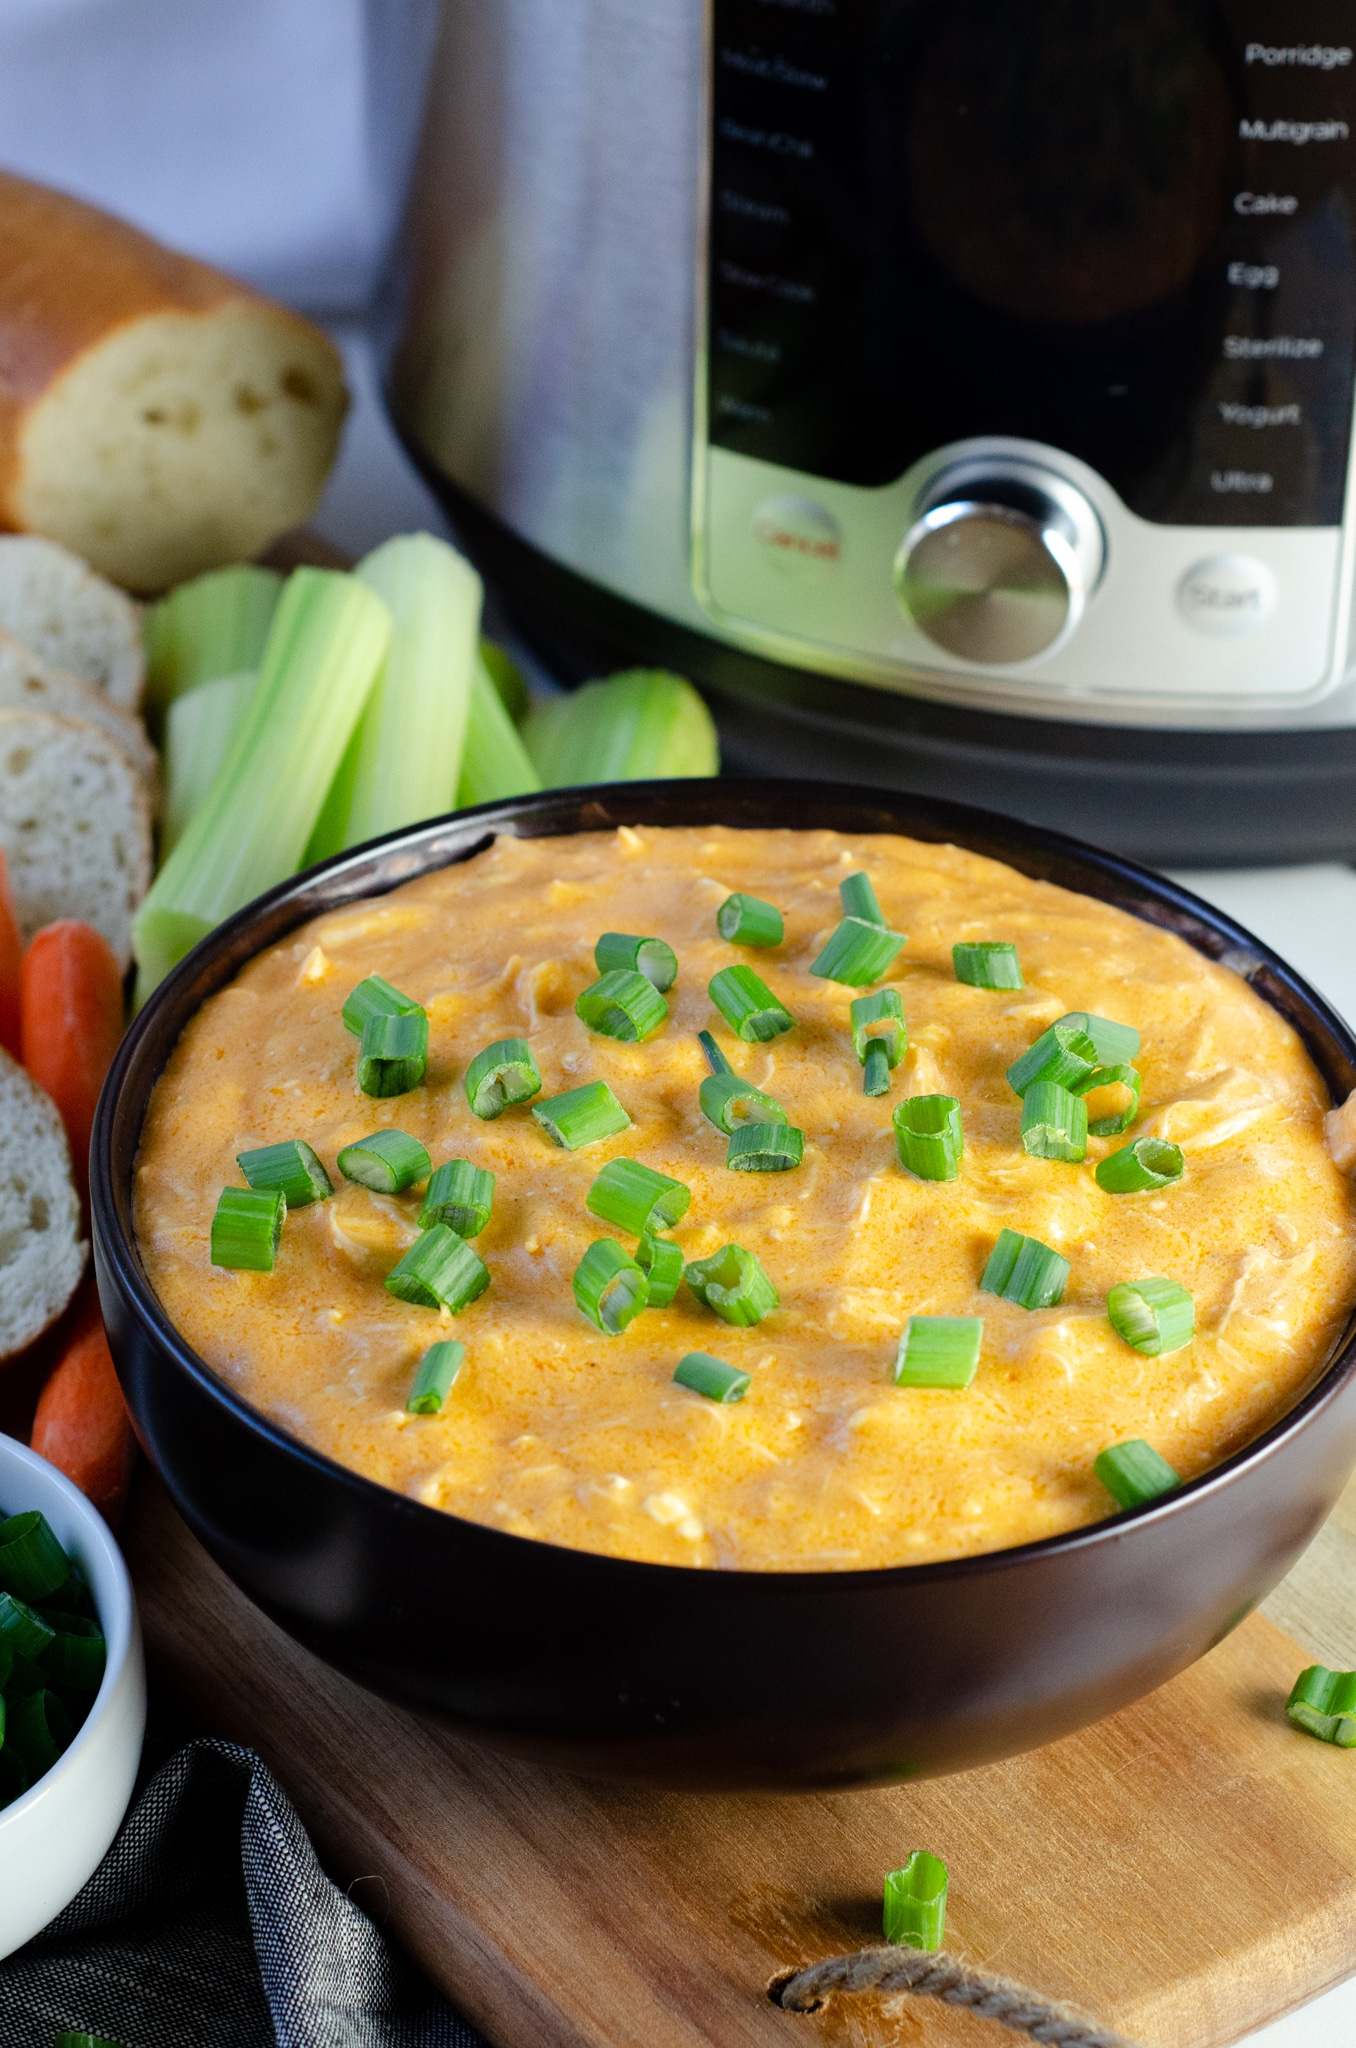 Buffalo Chicken Dip Instant Pot. This easy one-pot Buffalo Chicken Dip recipe is packed full of flavor and oh so easy to make. It's a foolproof appetizer recipe that easily becomes the star of any party and can be made in the Instant Pot or Slow Cooker.